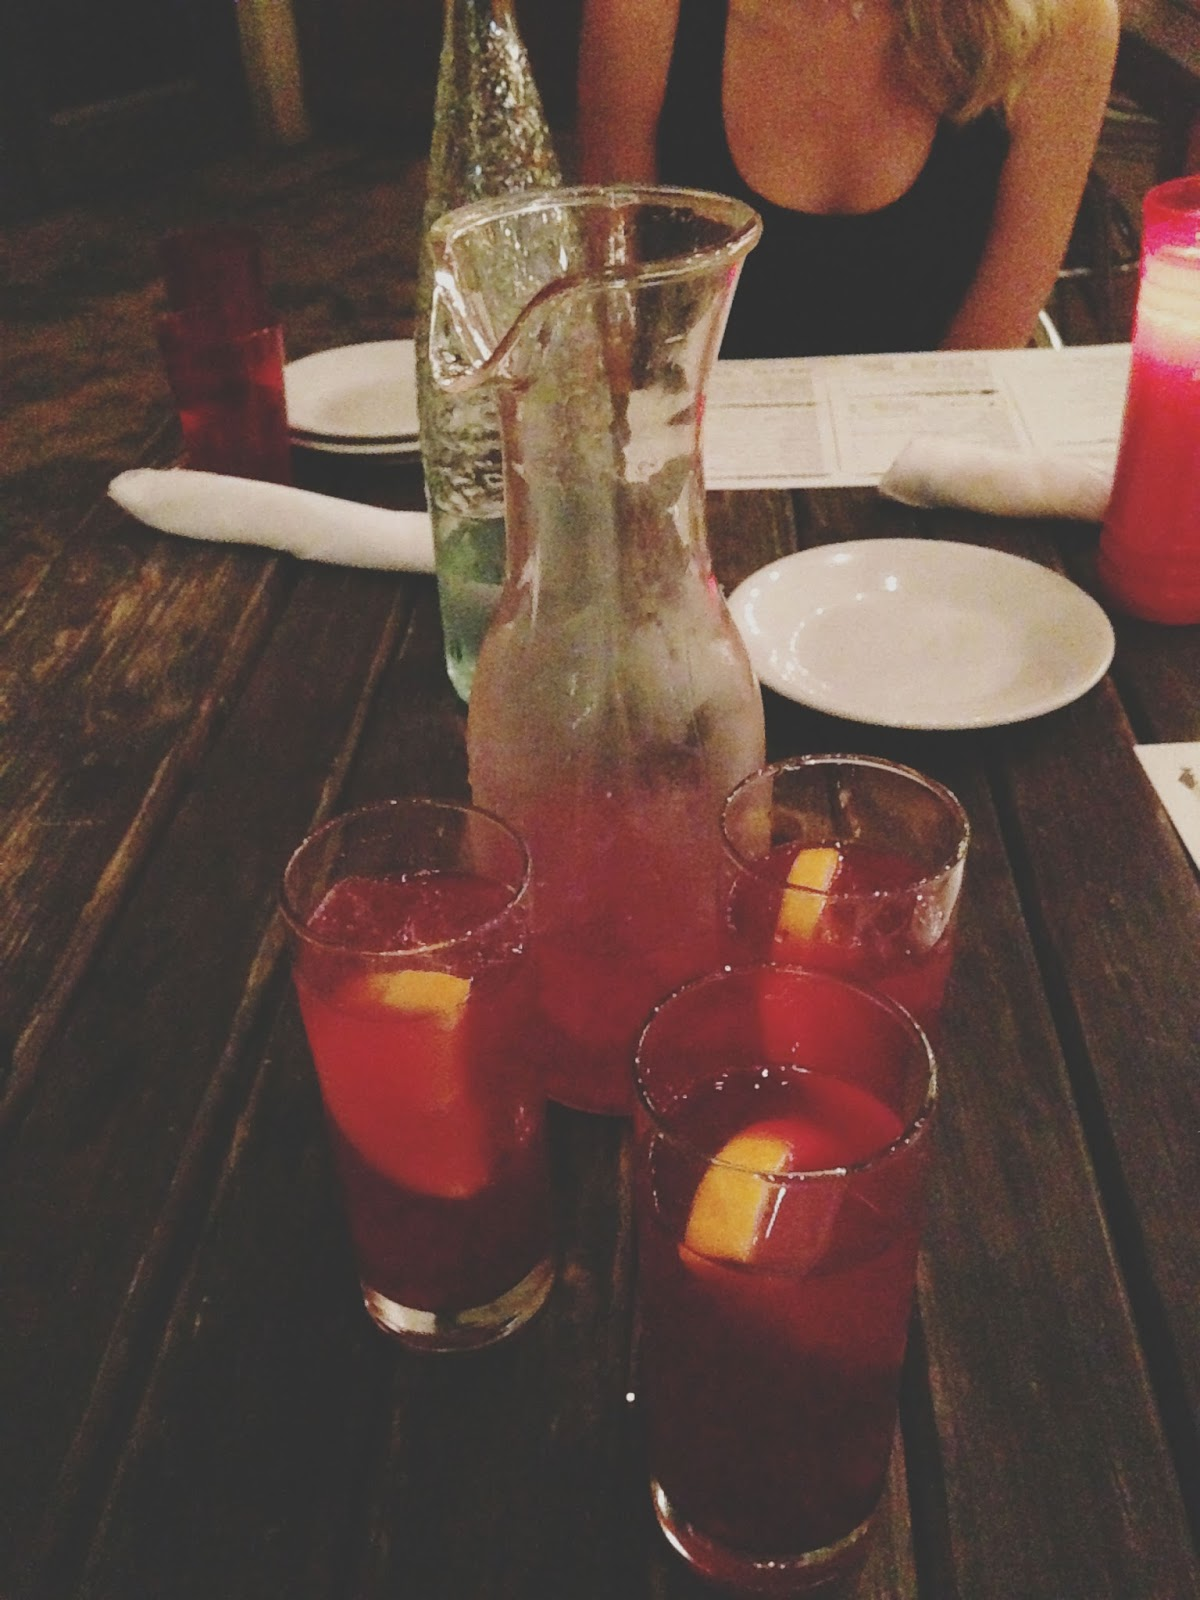 houston food - batanga sangria